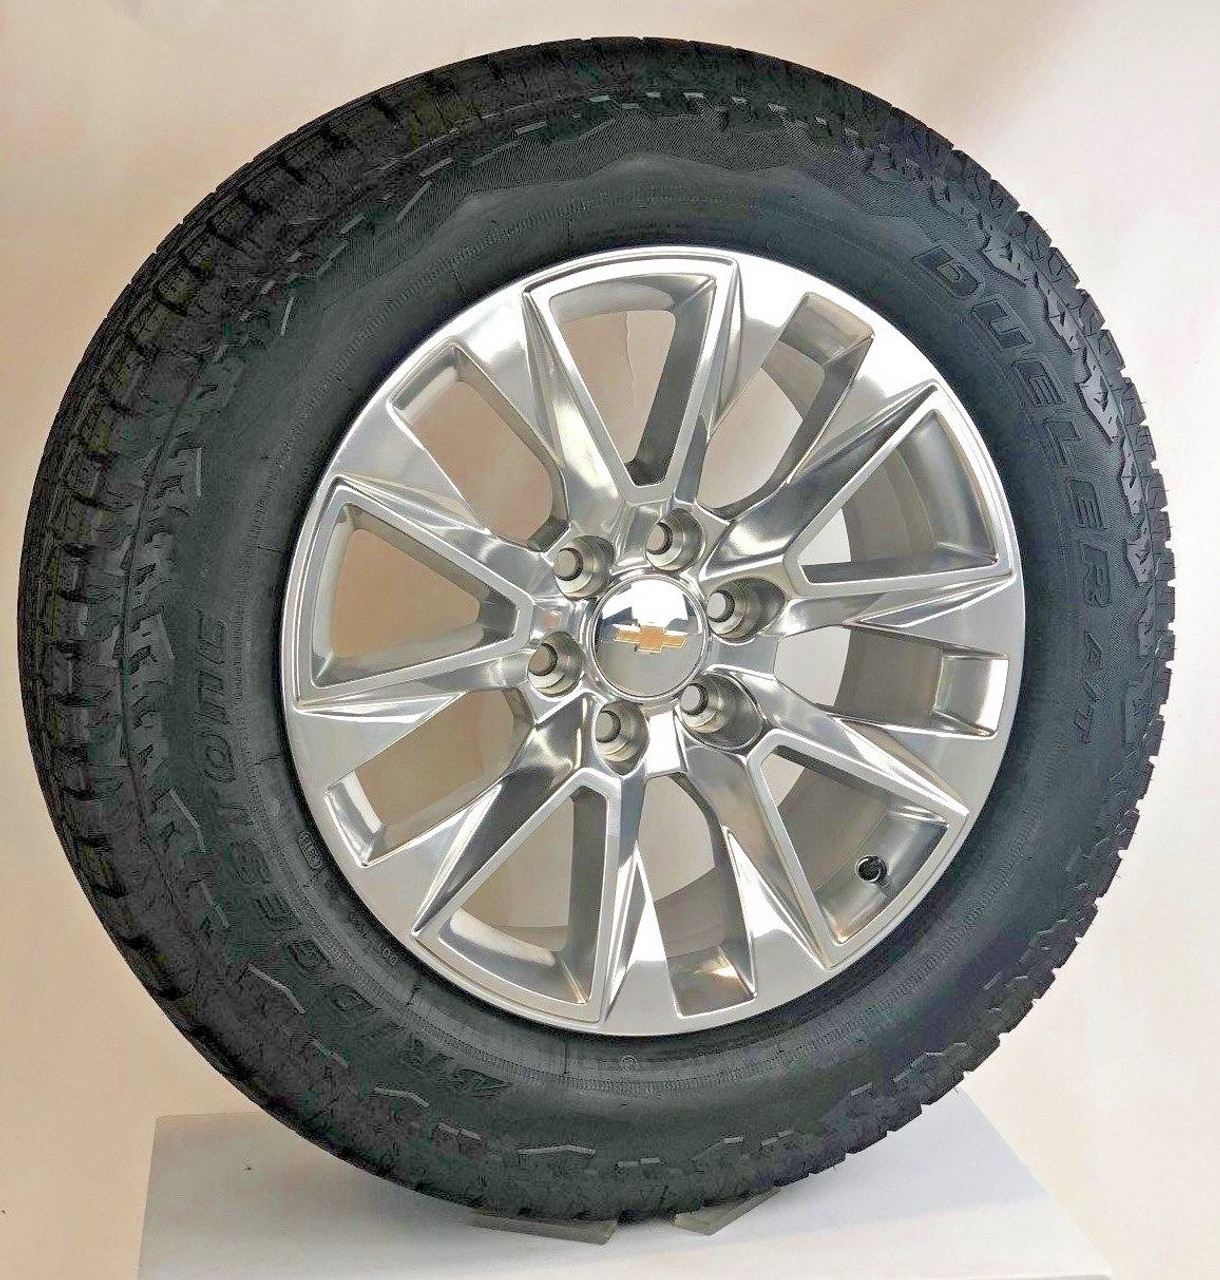 New 2020 Takeoff 20 Chevy Silverado Polished Wheels With Bridgestone A T Tire Ezdealin Wheels And Tires